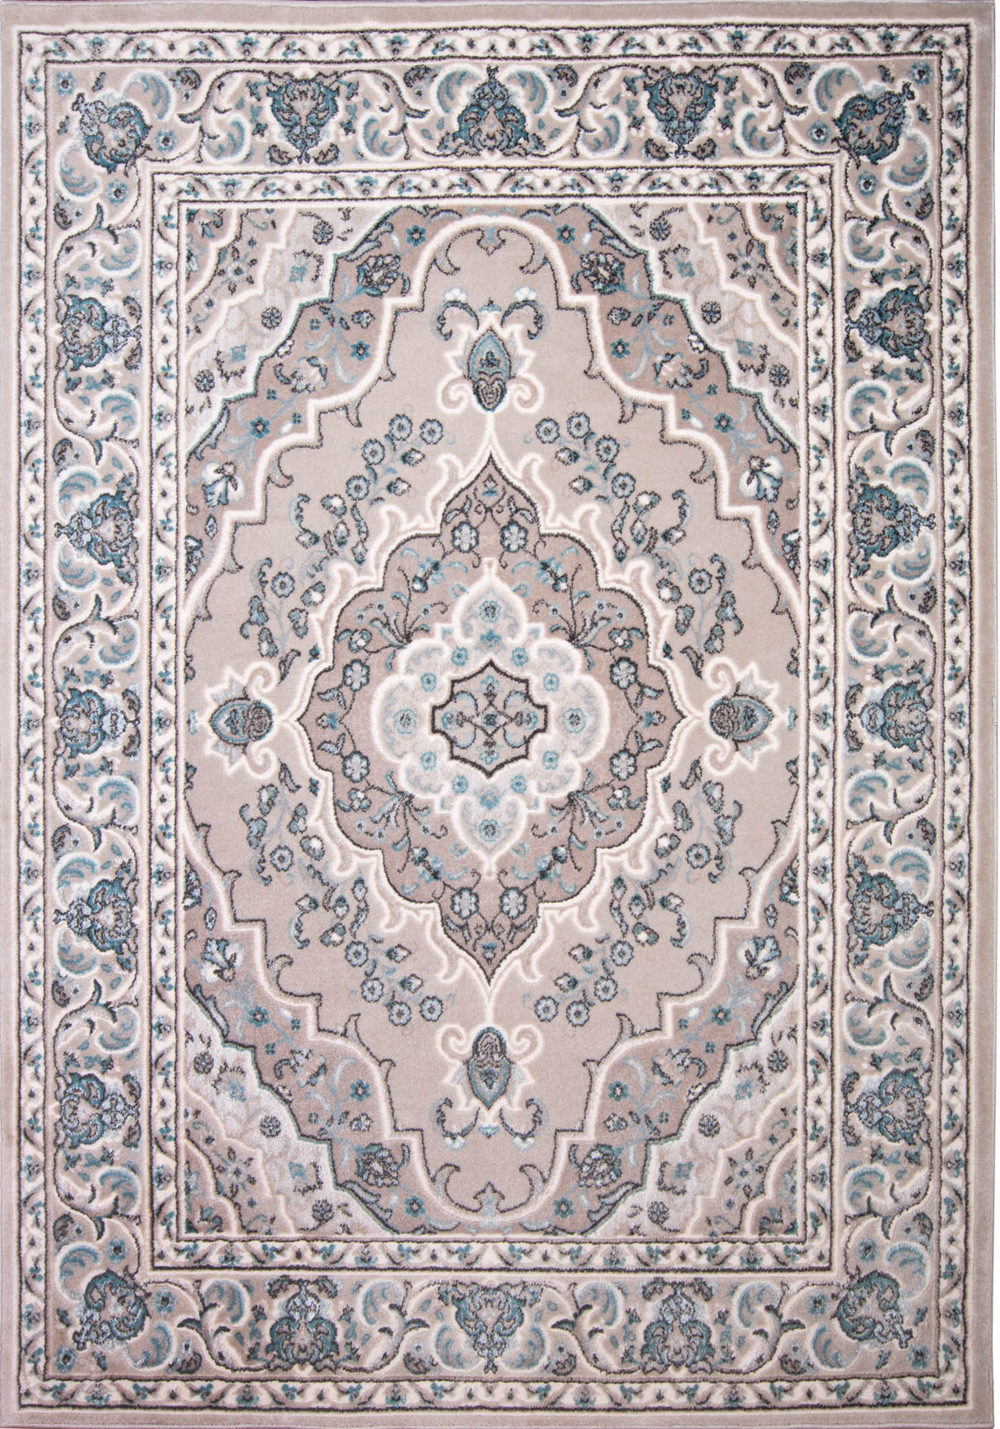 Contemporary Beige 8x10 Scrolls Bordered Area Rug Actual